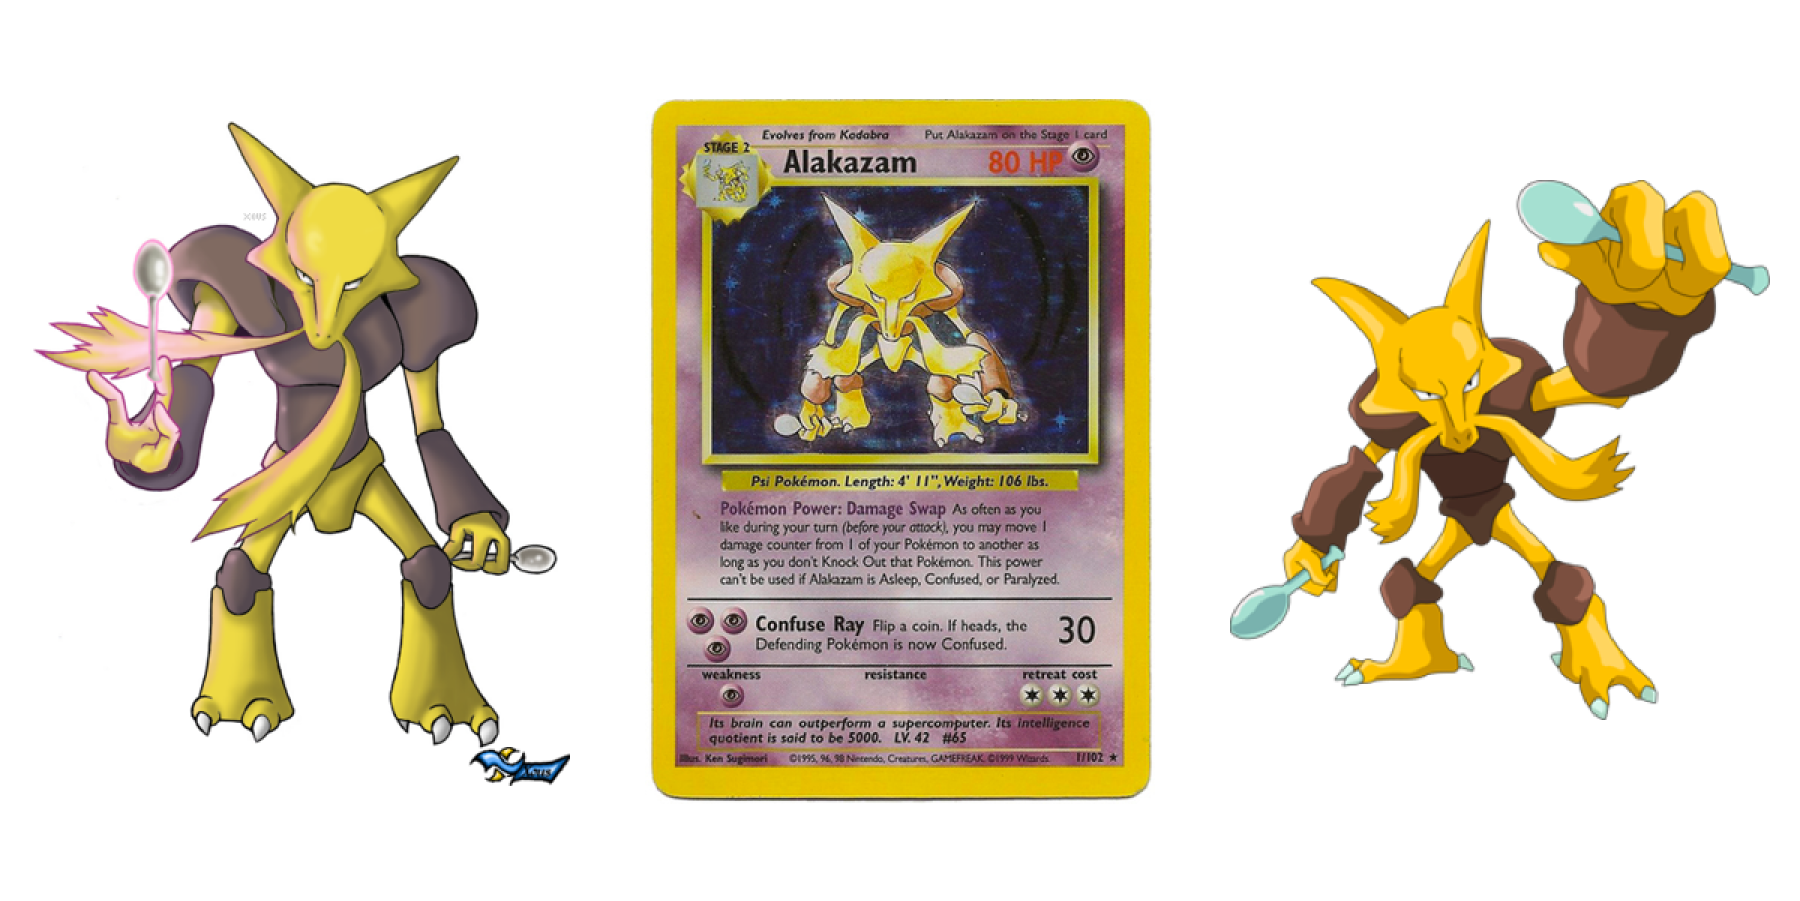 Cartoon illustrations of Alakazam with his card featured in the middle